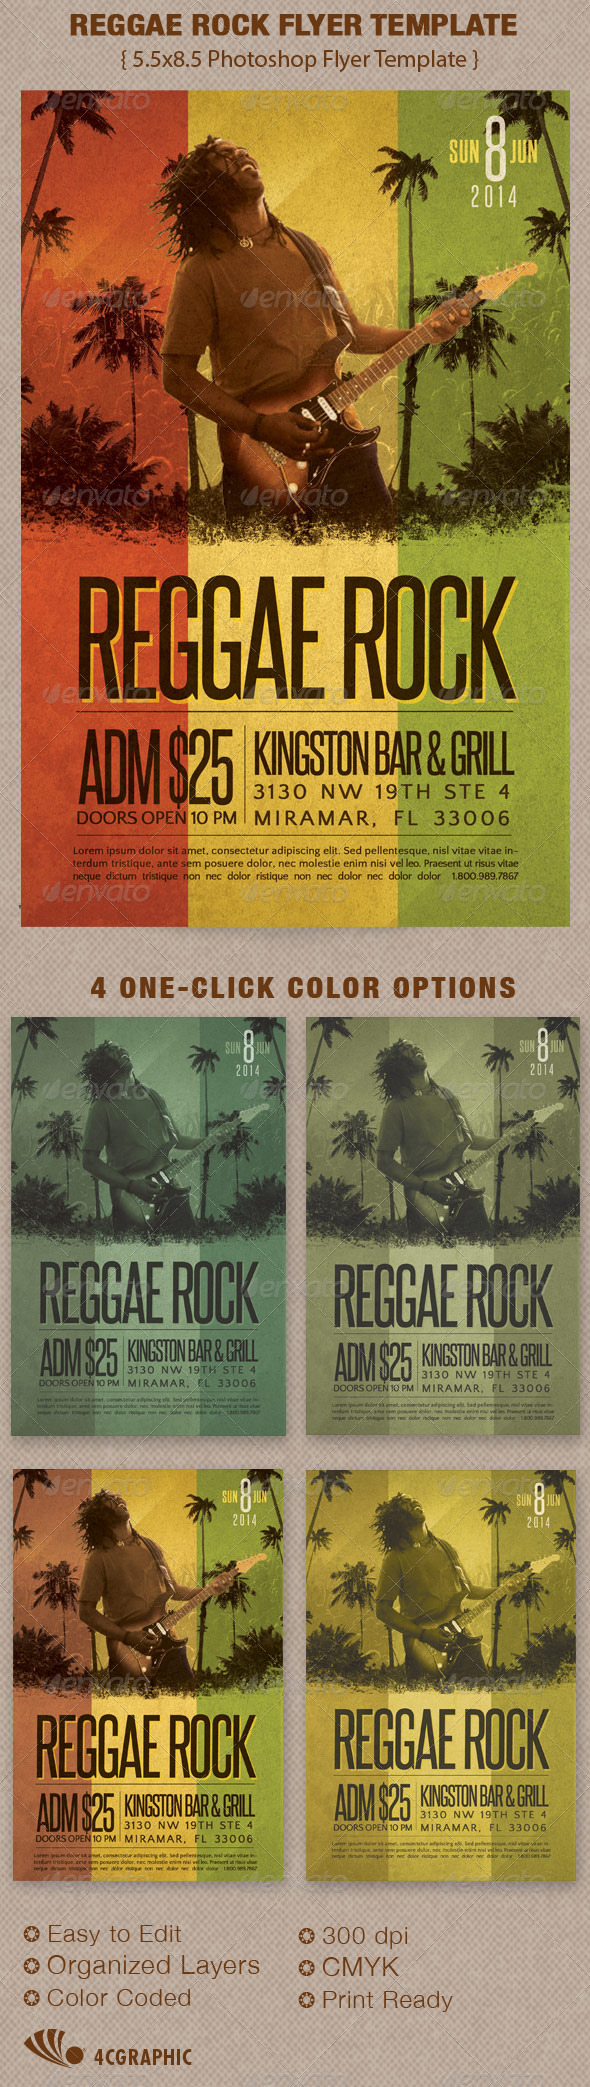 Reggae Rock Flyer Template - Events Flyers